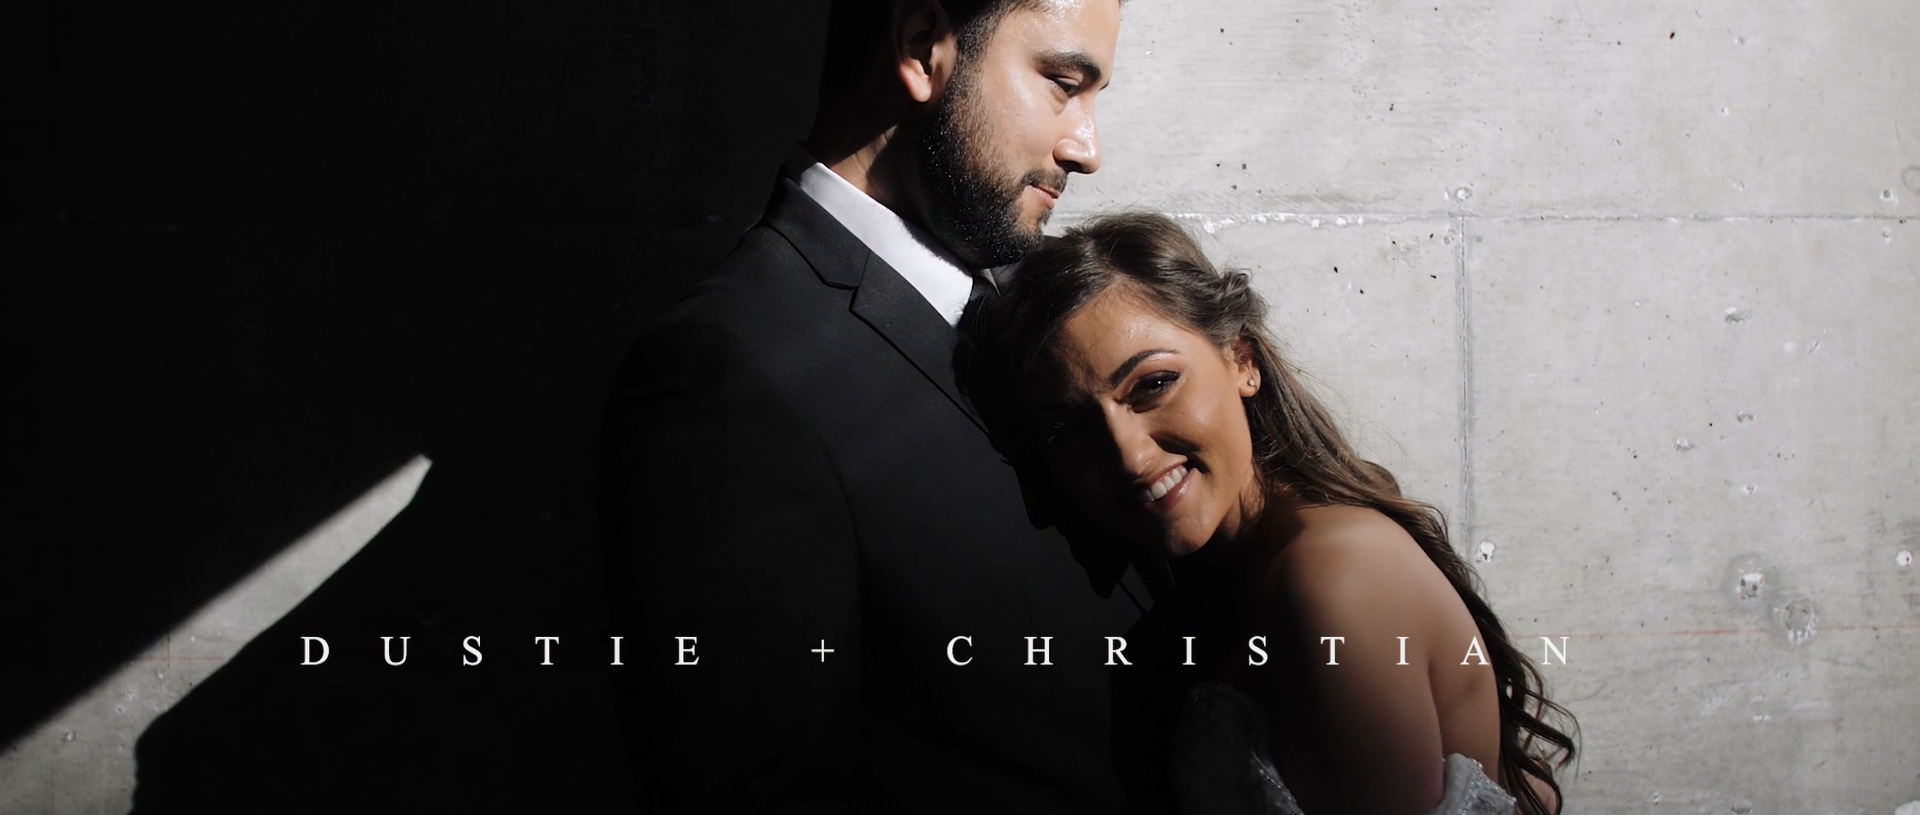 Dustie + Christian | West Hollywood, California | Madera Kitchen